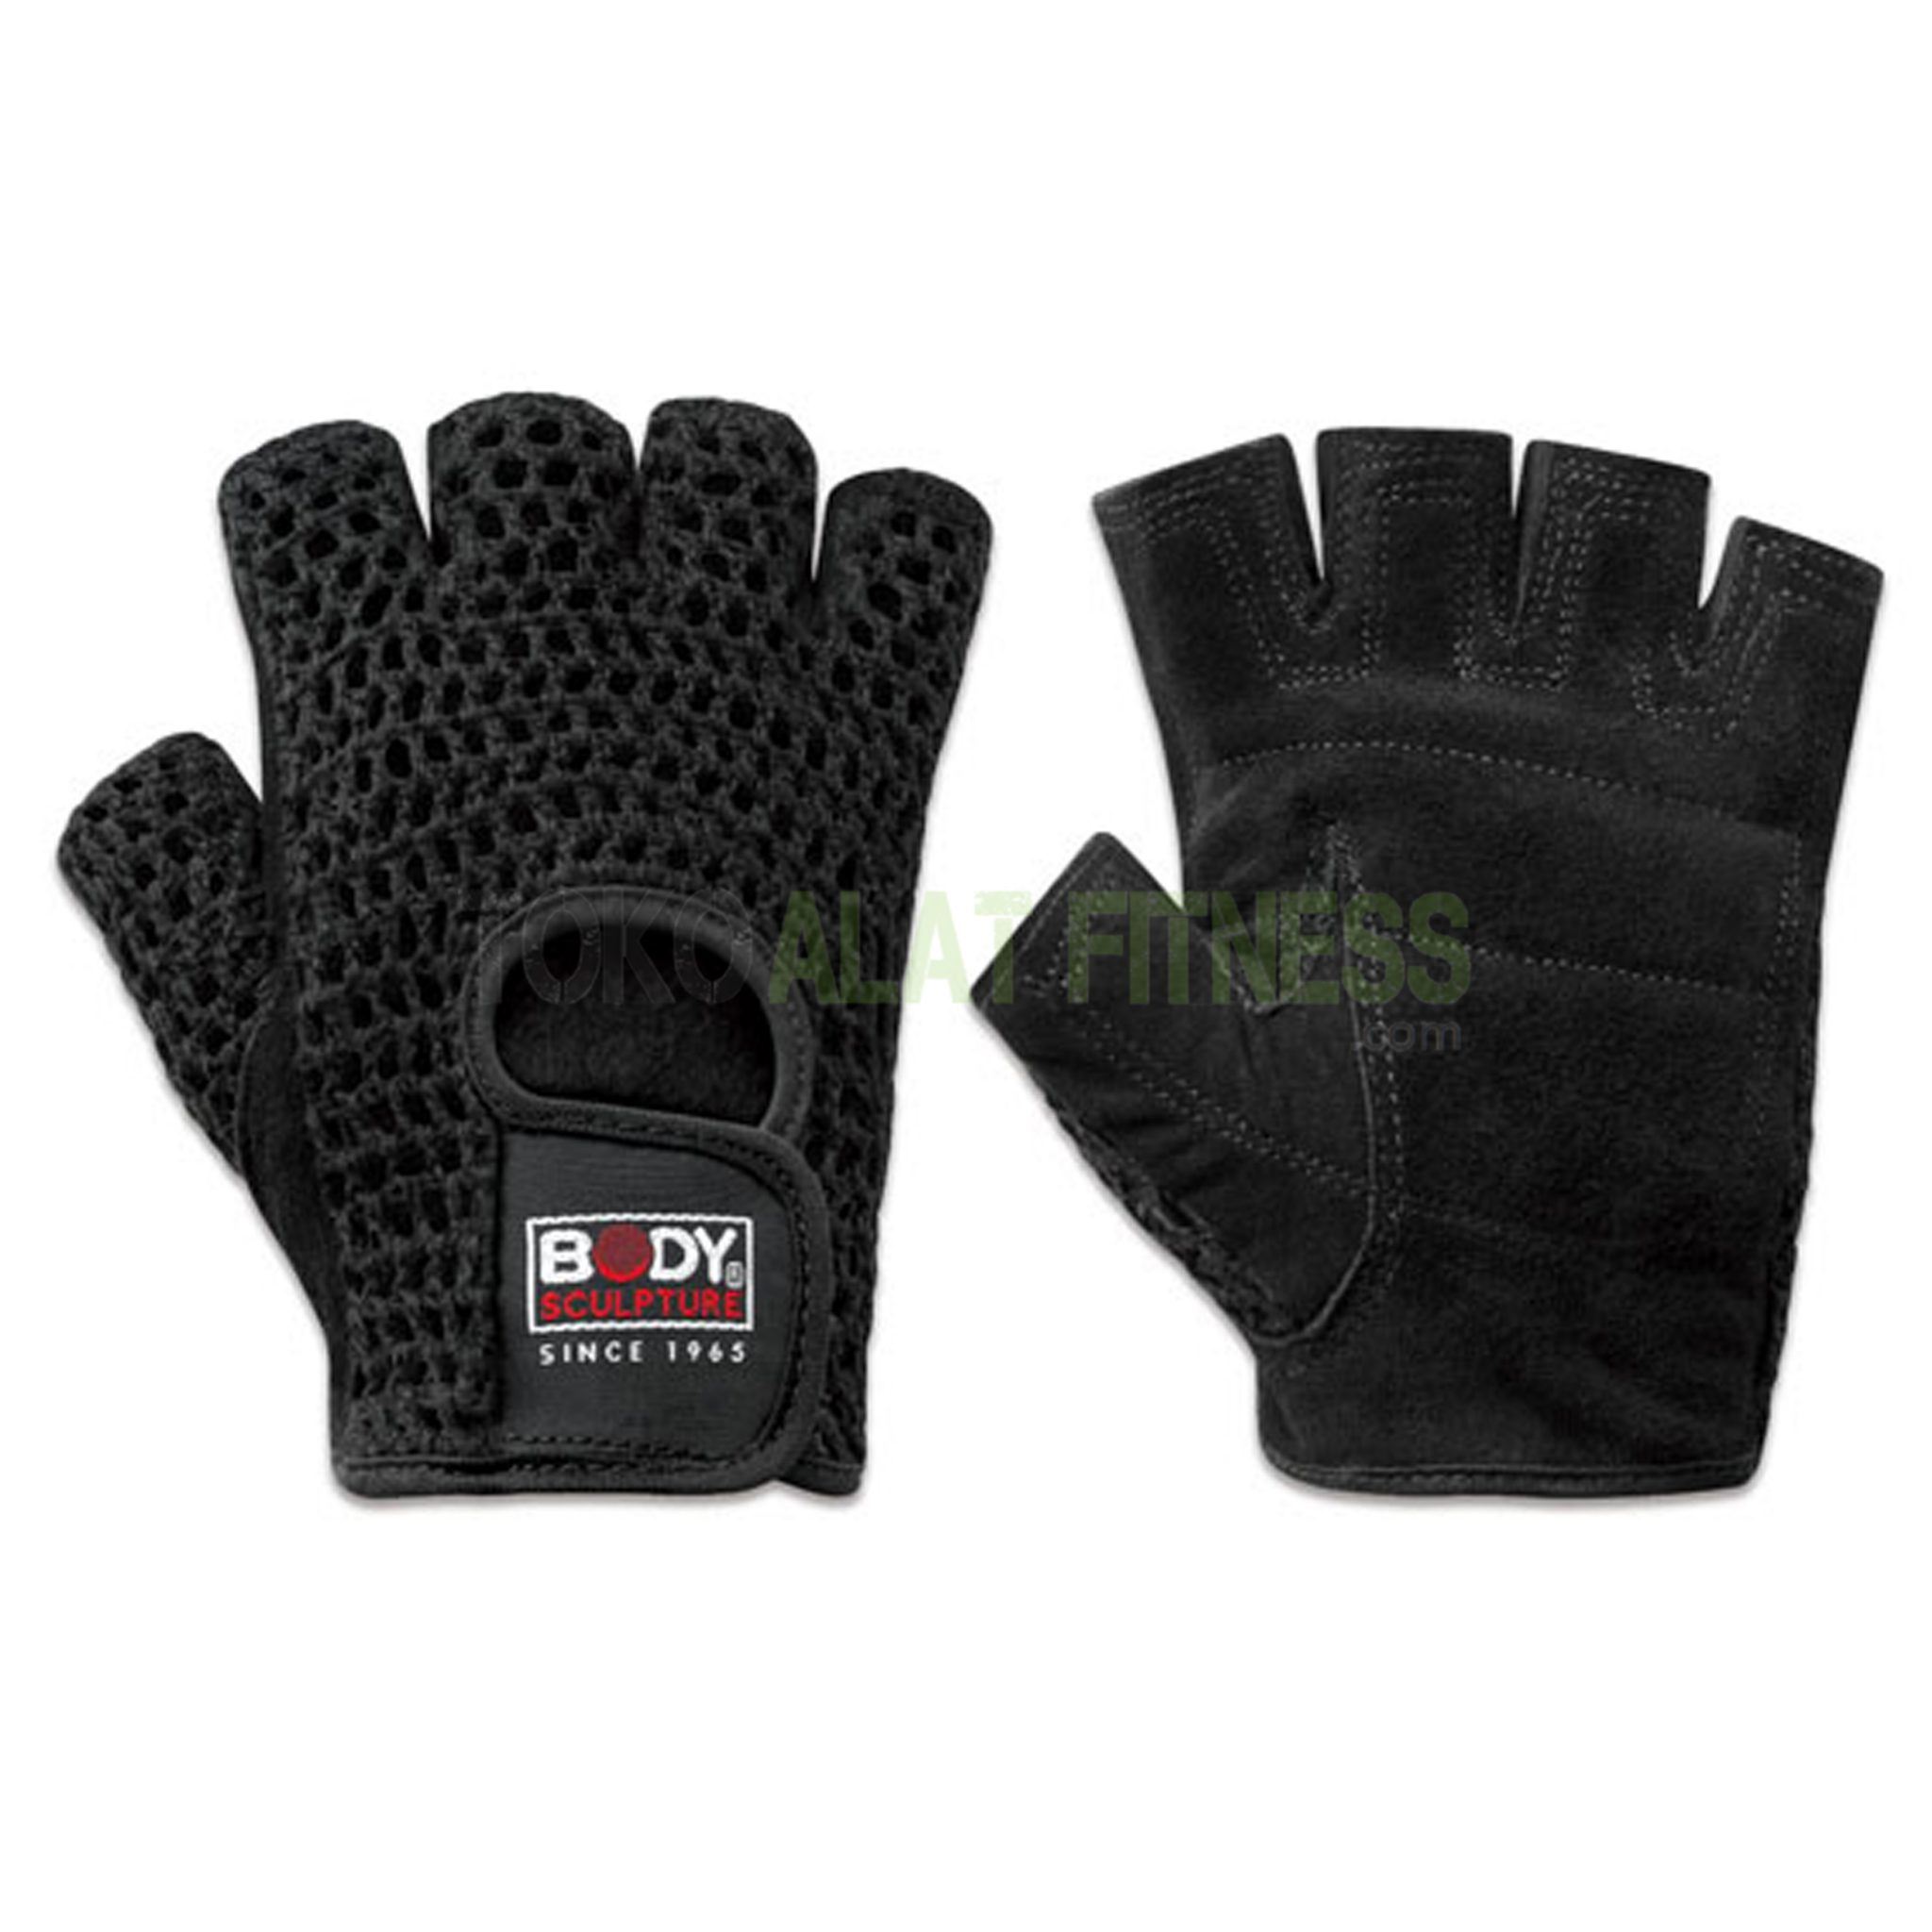 leather fitness gloves net wtm 2 - Leather Fitness Gloves Nets XL Body Sculpture